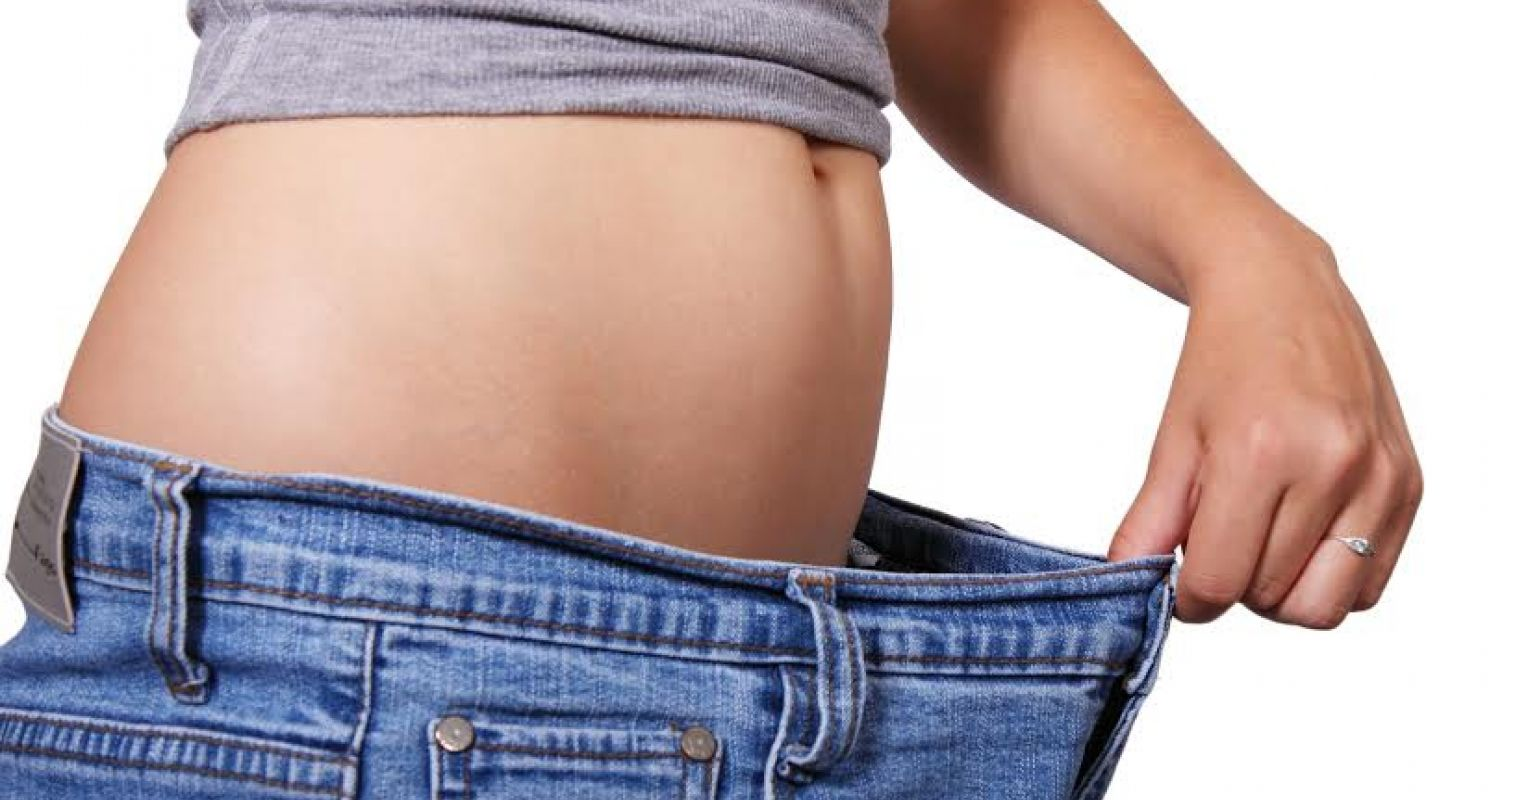 dos collagen cause weight gain or help you lose weight